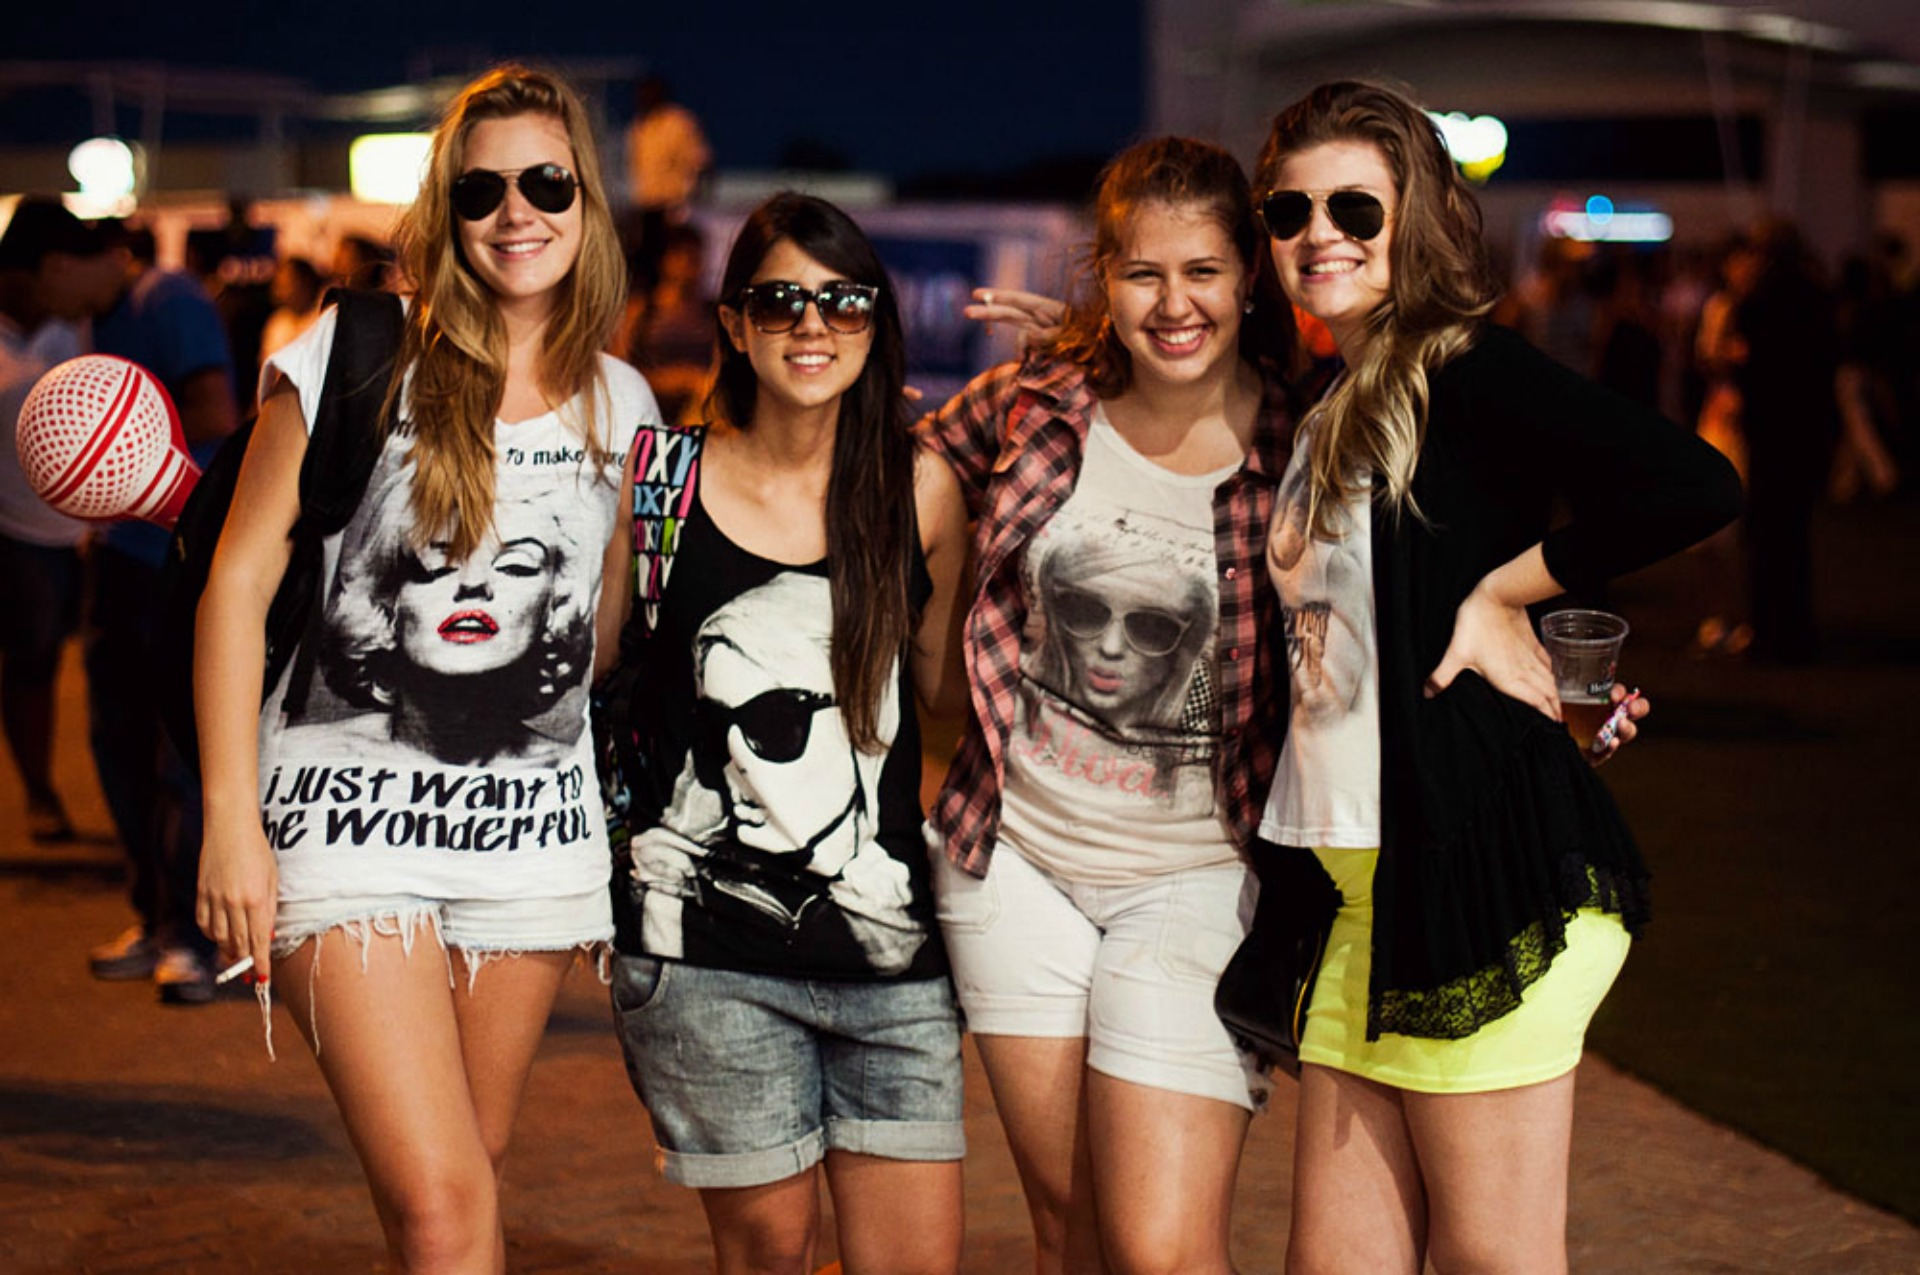 Rock in Rio is back in Rio for 2015